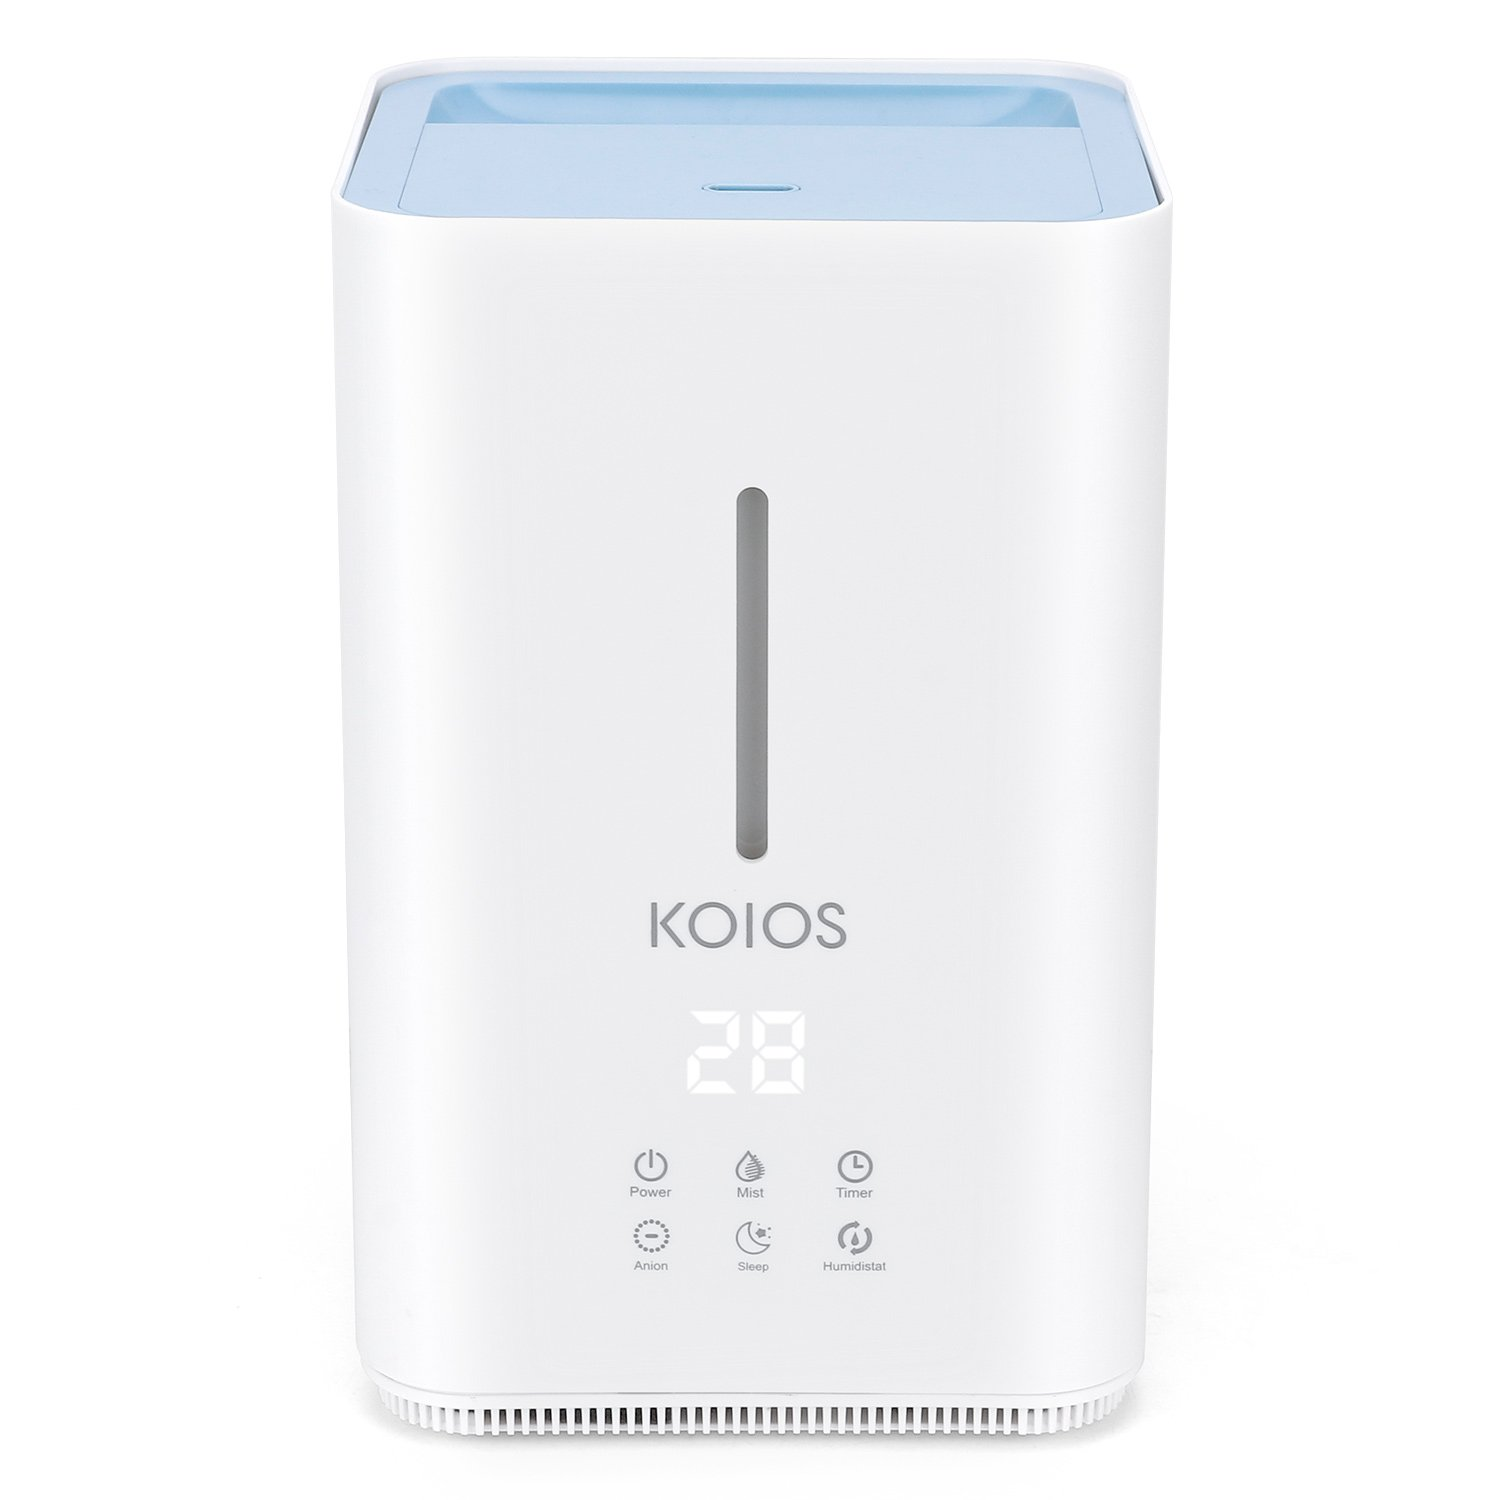 Humidifier, Koios Ultrasonic Cool Mist 4L Humidifier, Open Water Tank, Top Fill Water, 3 Adjustable Mist Levels, Sleep Mode, Whisper-Quiet , Real-Time Detection of Humidity for Baby Home and Office